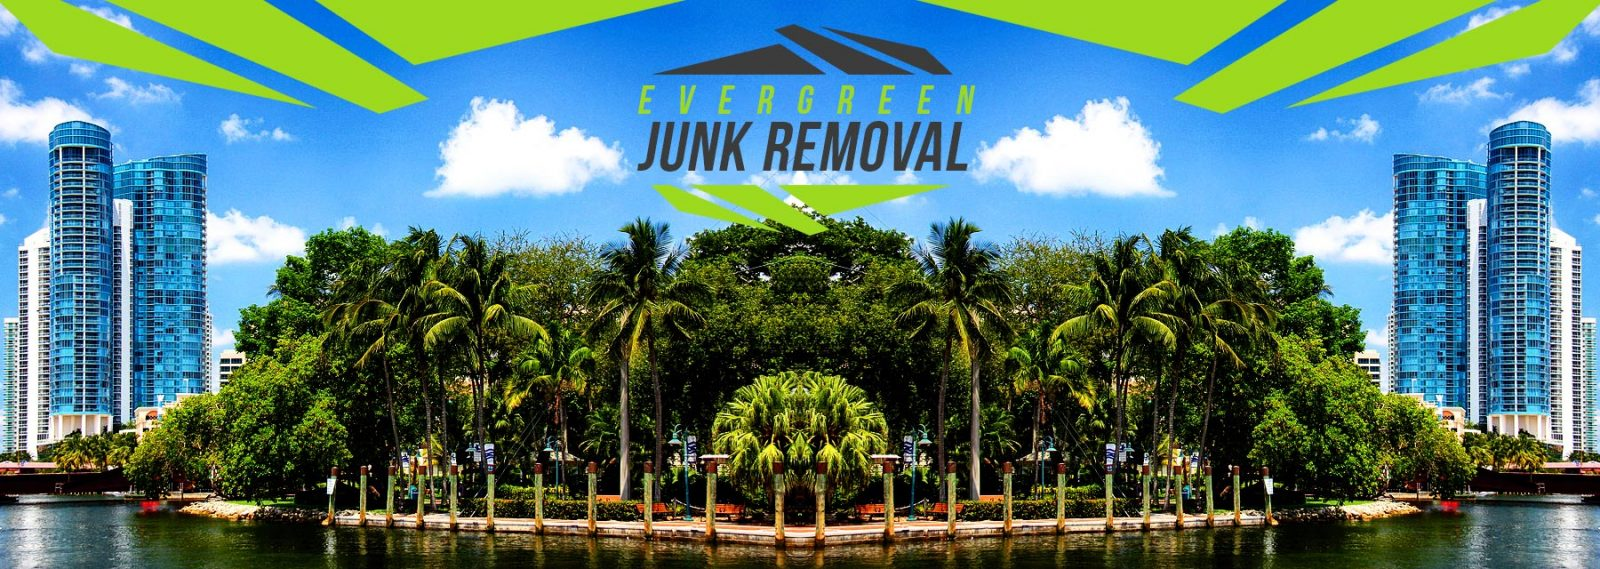 Oakland-Park-Hot-Tub-Removal-Company